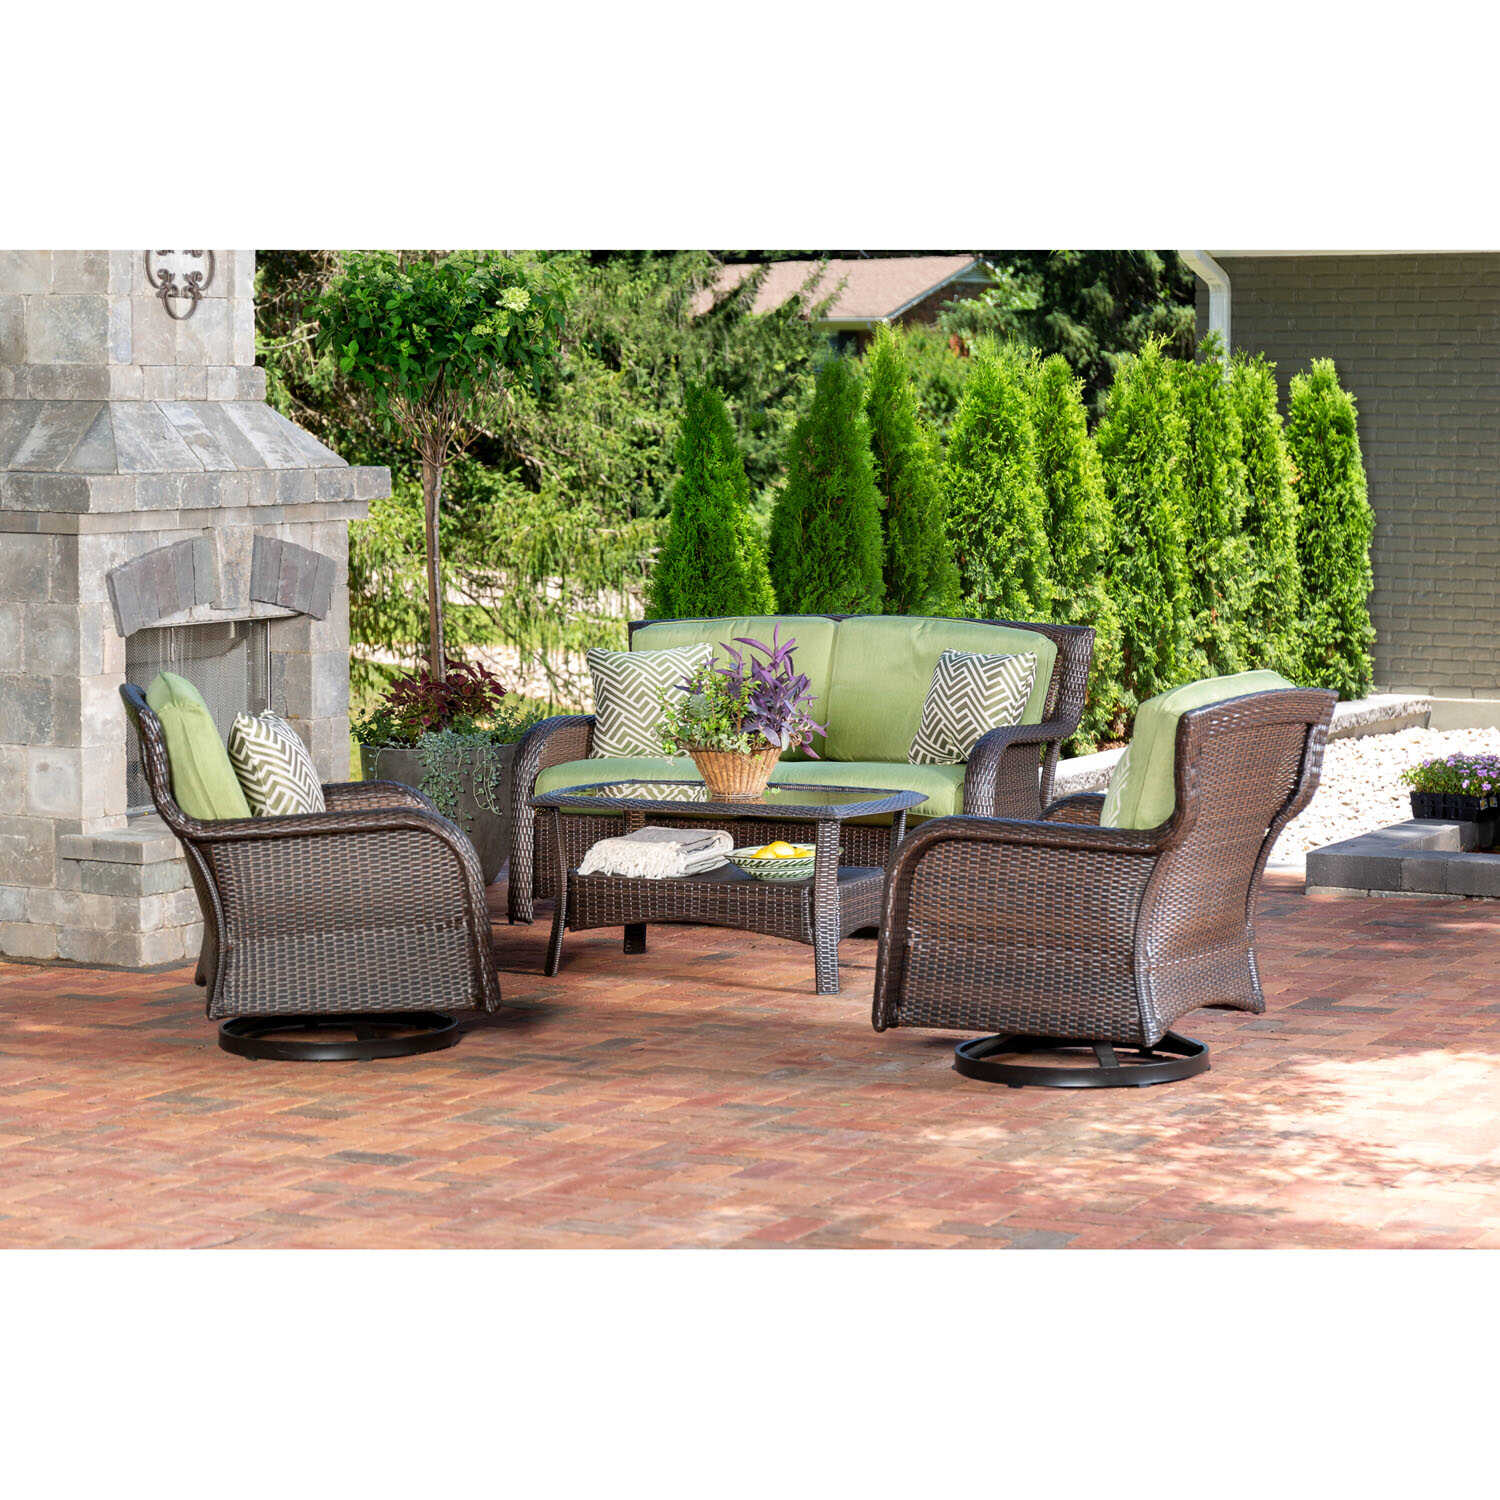 Hanover  Strathmere  4 pc. Aged Barrel Steel  Steel  Lounge  Cilantro Green